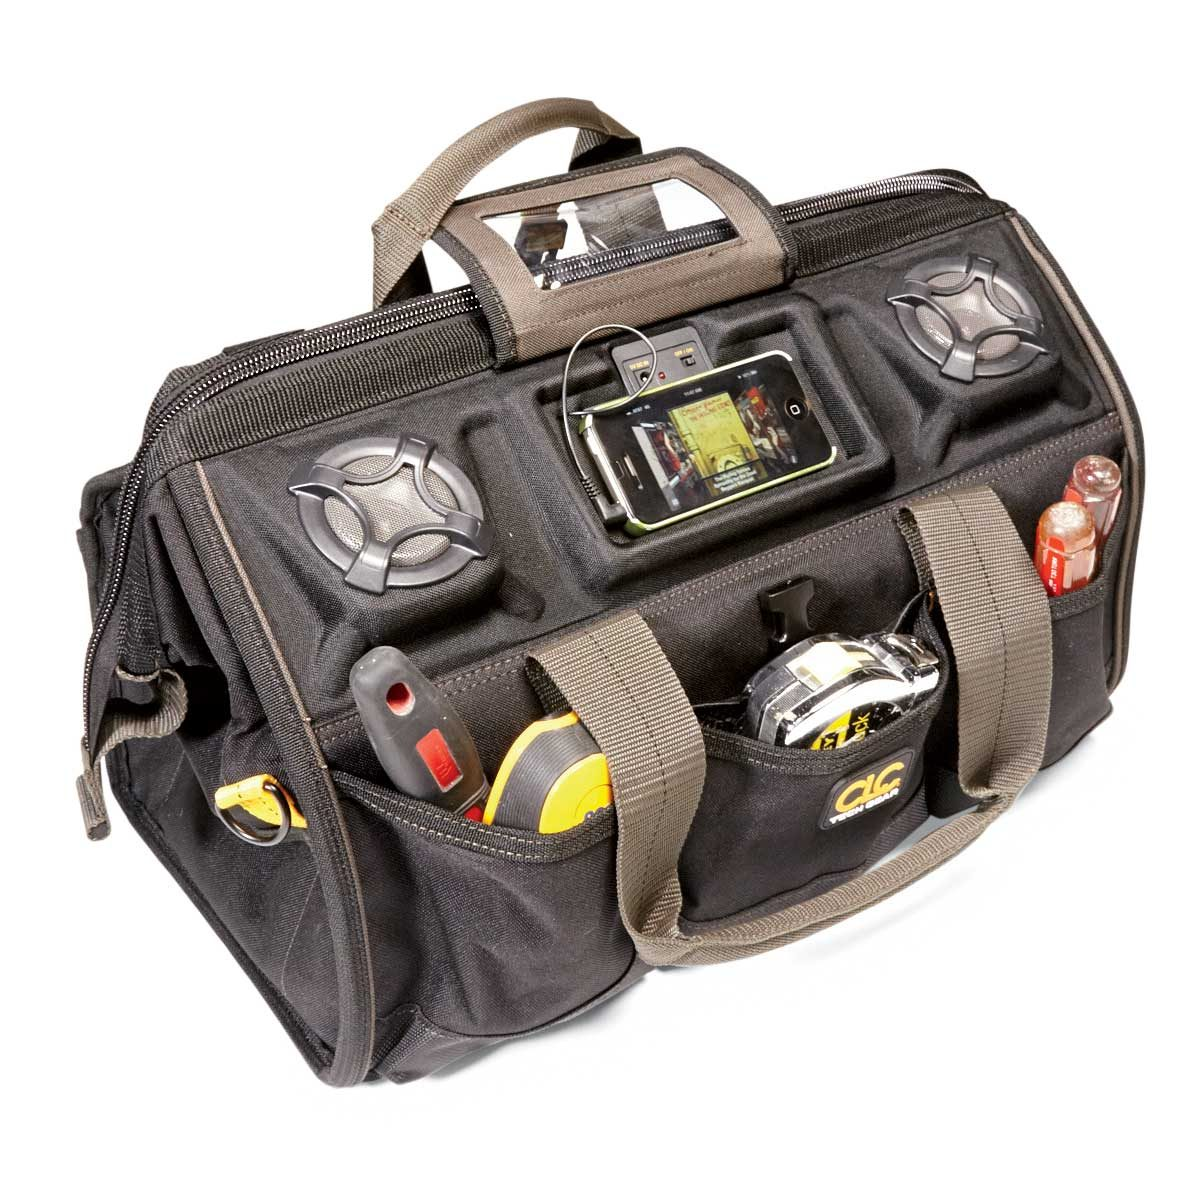 stuff we love CLC work gear speaker tool bag